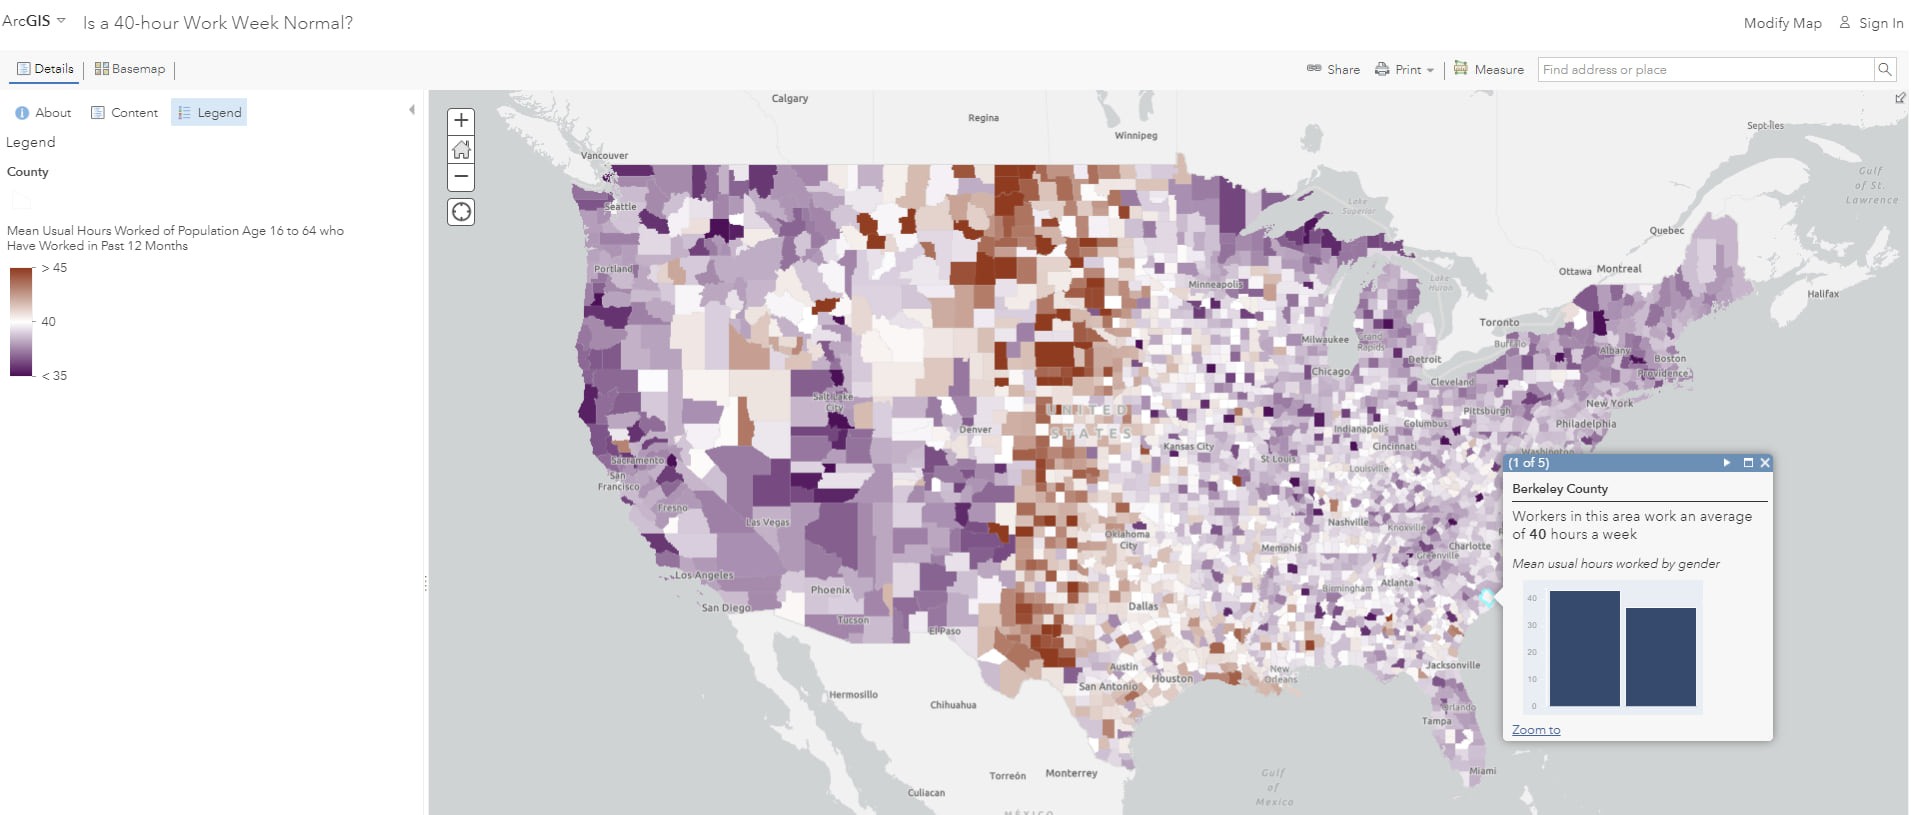 Map of continental US counties using above and below ramp. Midwest counties are more red, other counties are more purple, counties close to 40 hours are white.